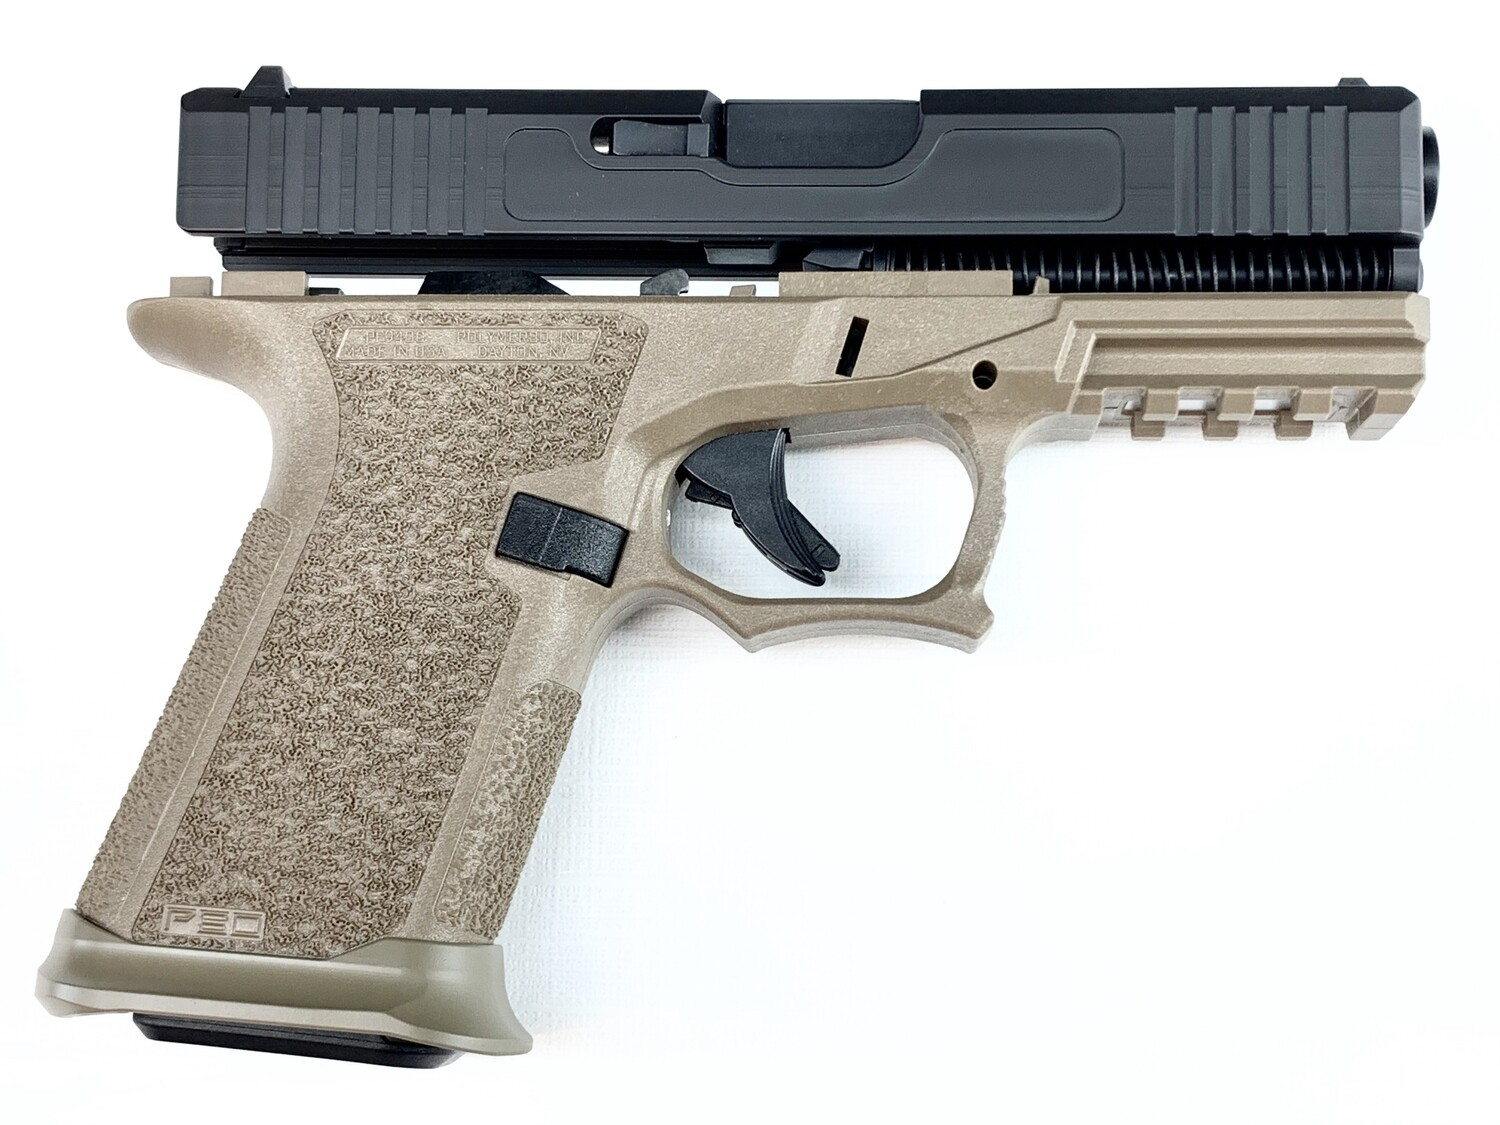 Patriot G19 80% Pistol Build Kit 9mm - Polymer80 PF940C - Black & FDE - Steel City Arsenal Magwell FDE